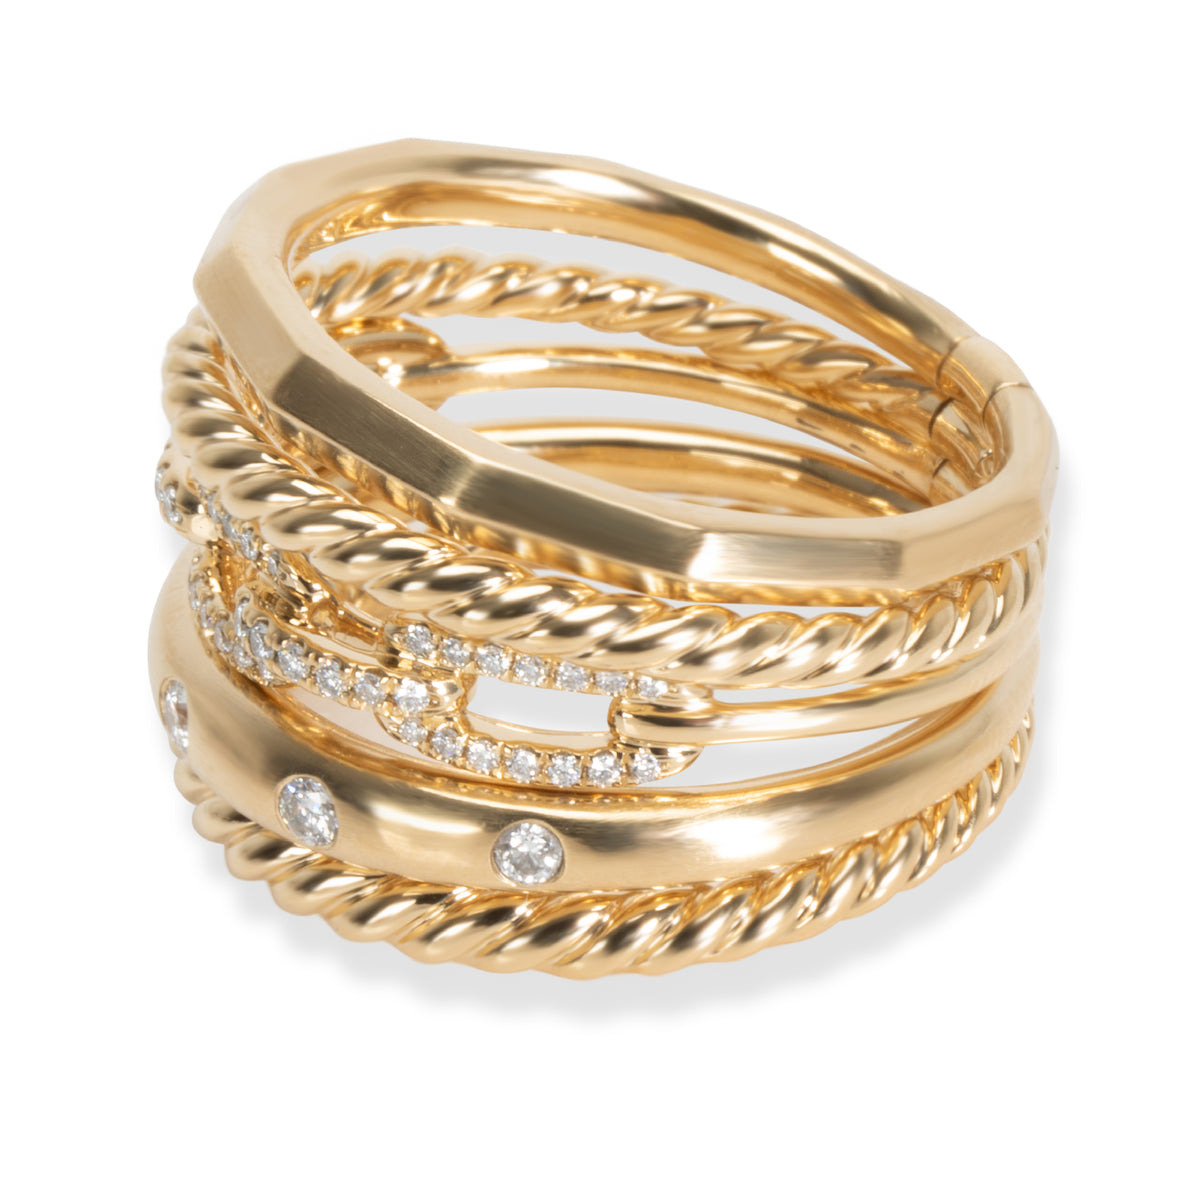 David Yurman Stax Diamond Ring in 18K Yellow Gold 0.26 CTW